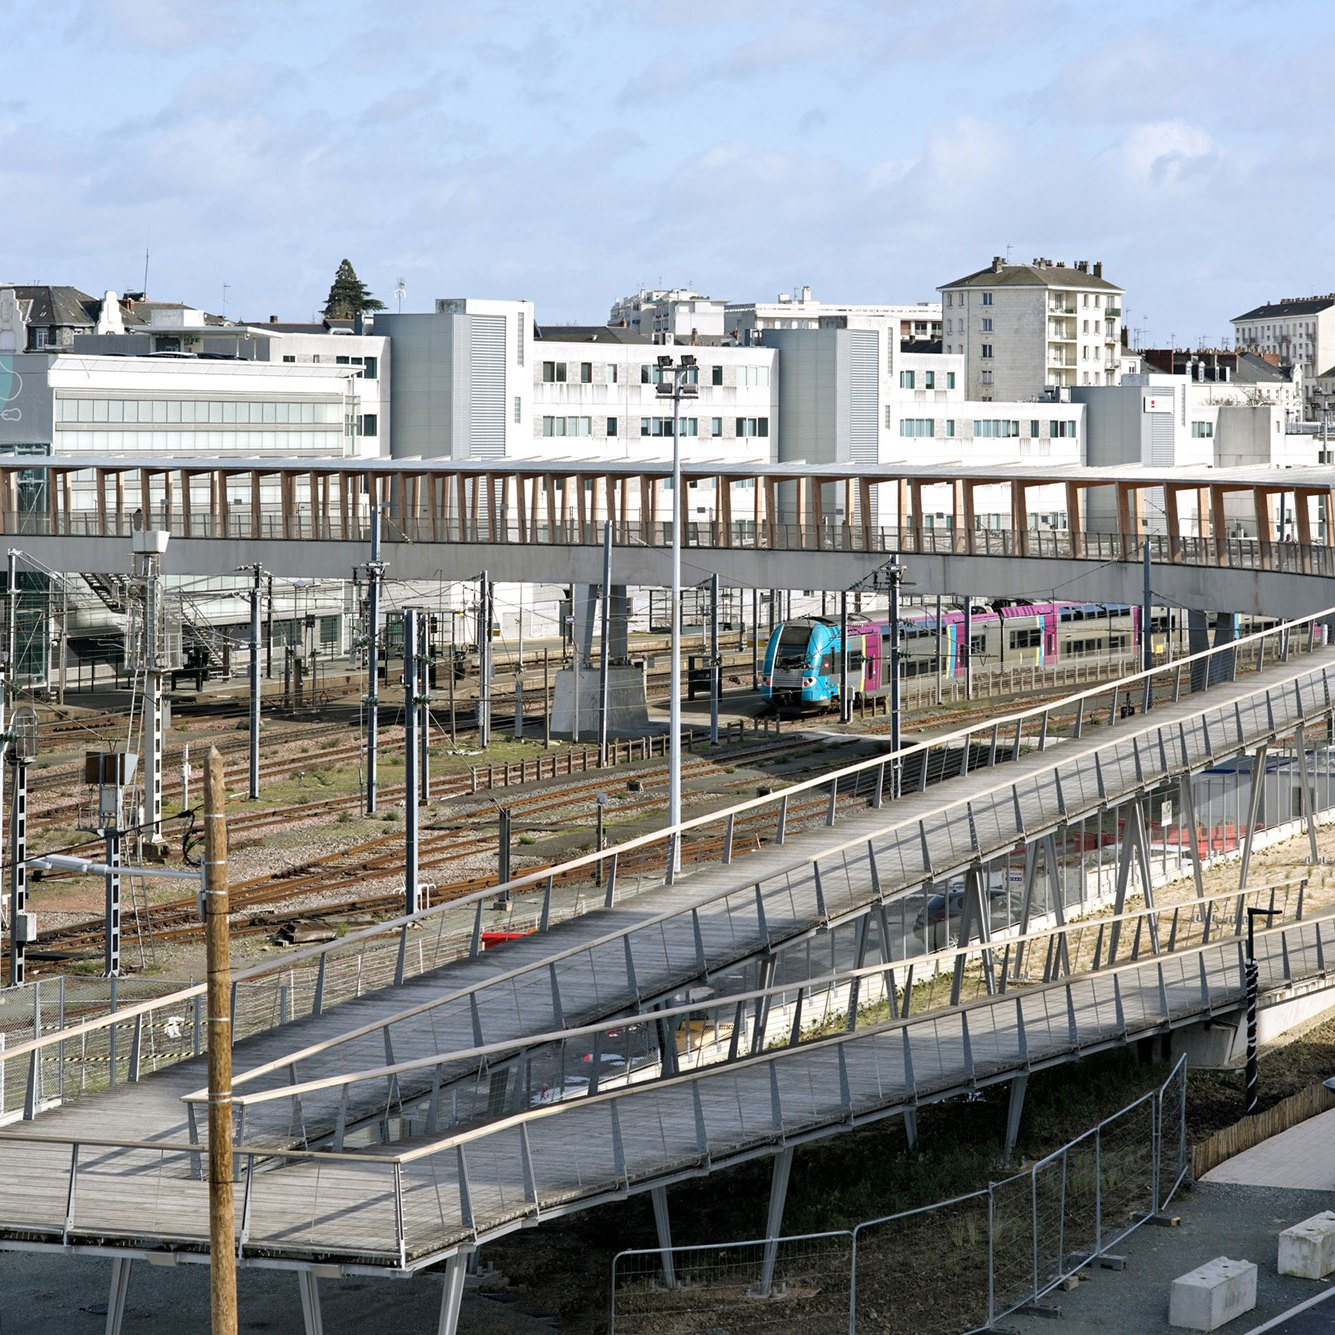 Ramps - Footbridge at Angers Saint-Laud TGV Train Station / Dietmar Feichtinger Architectes (DFA)